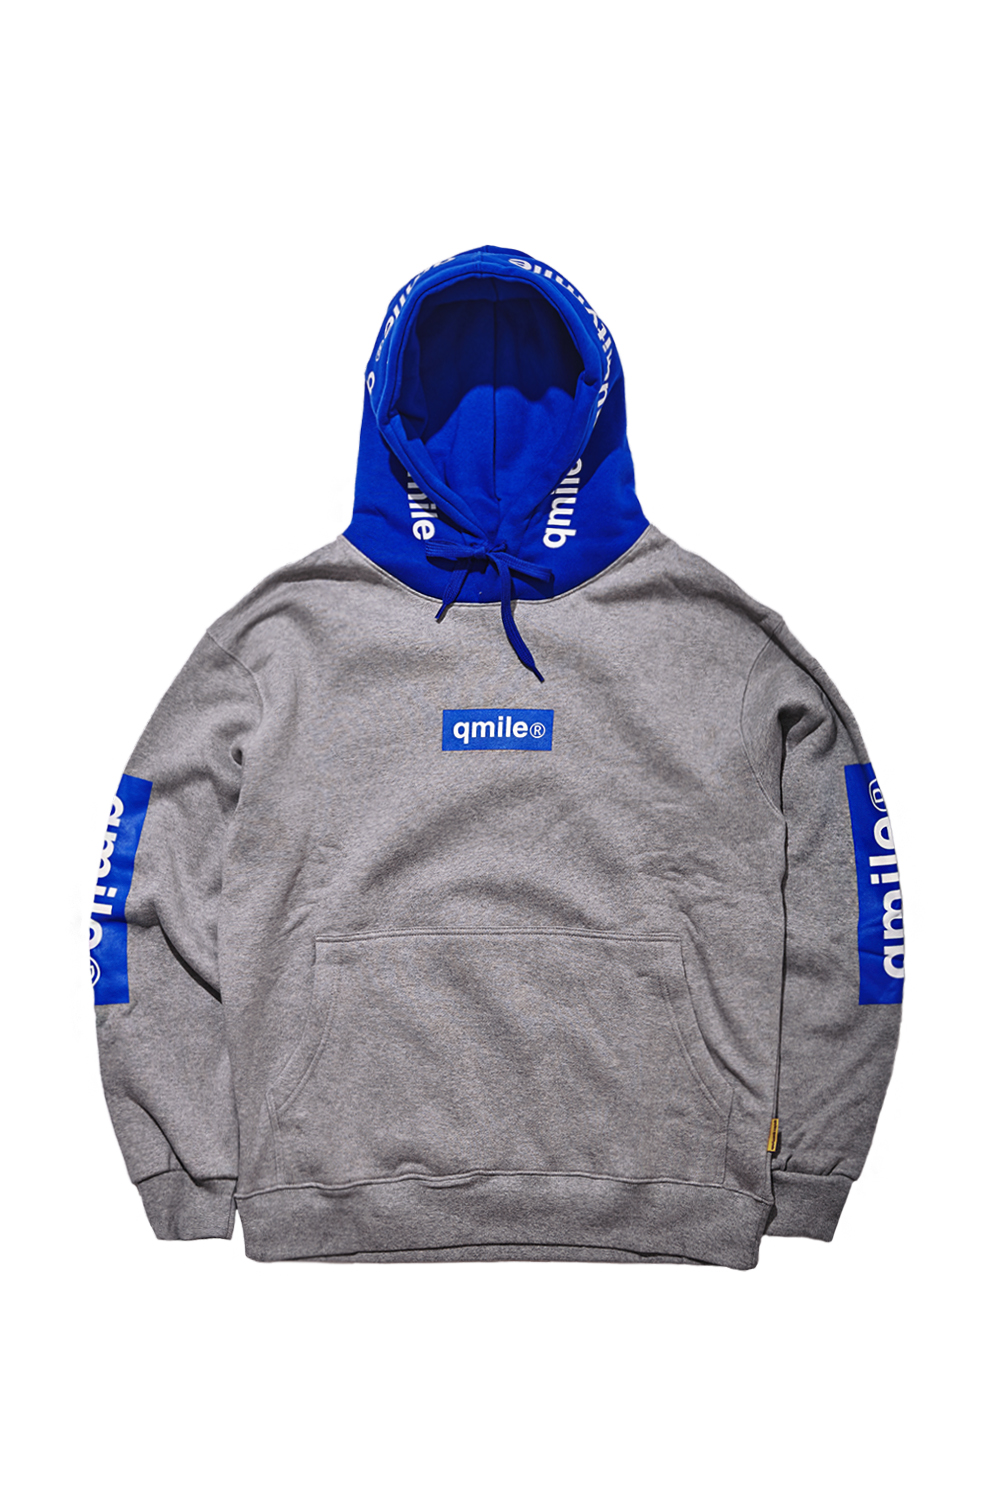 TRIPPLE BOX HOODIE SWEATSHIRTS | GREY